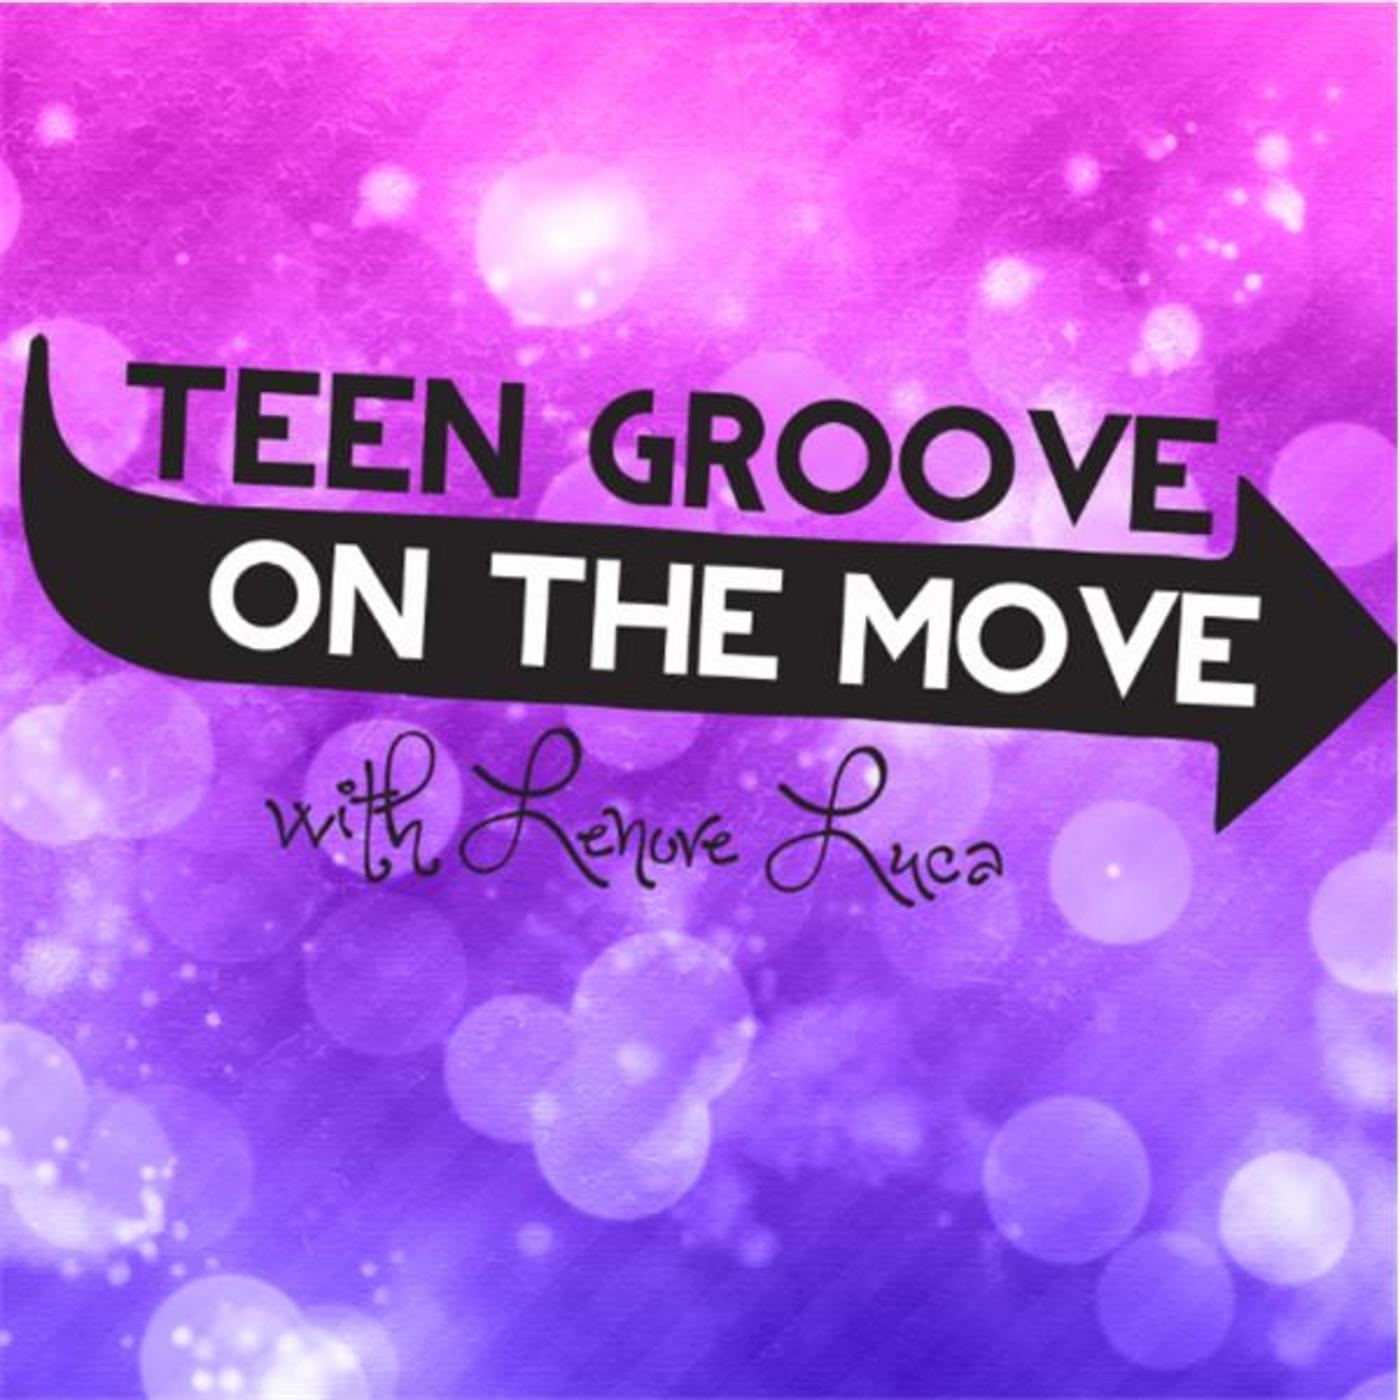 Teen Groove ~ On The Move